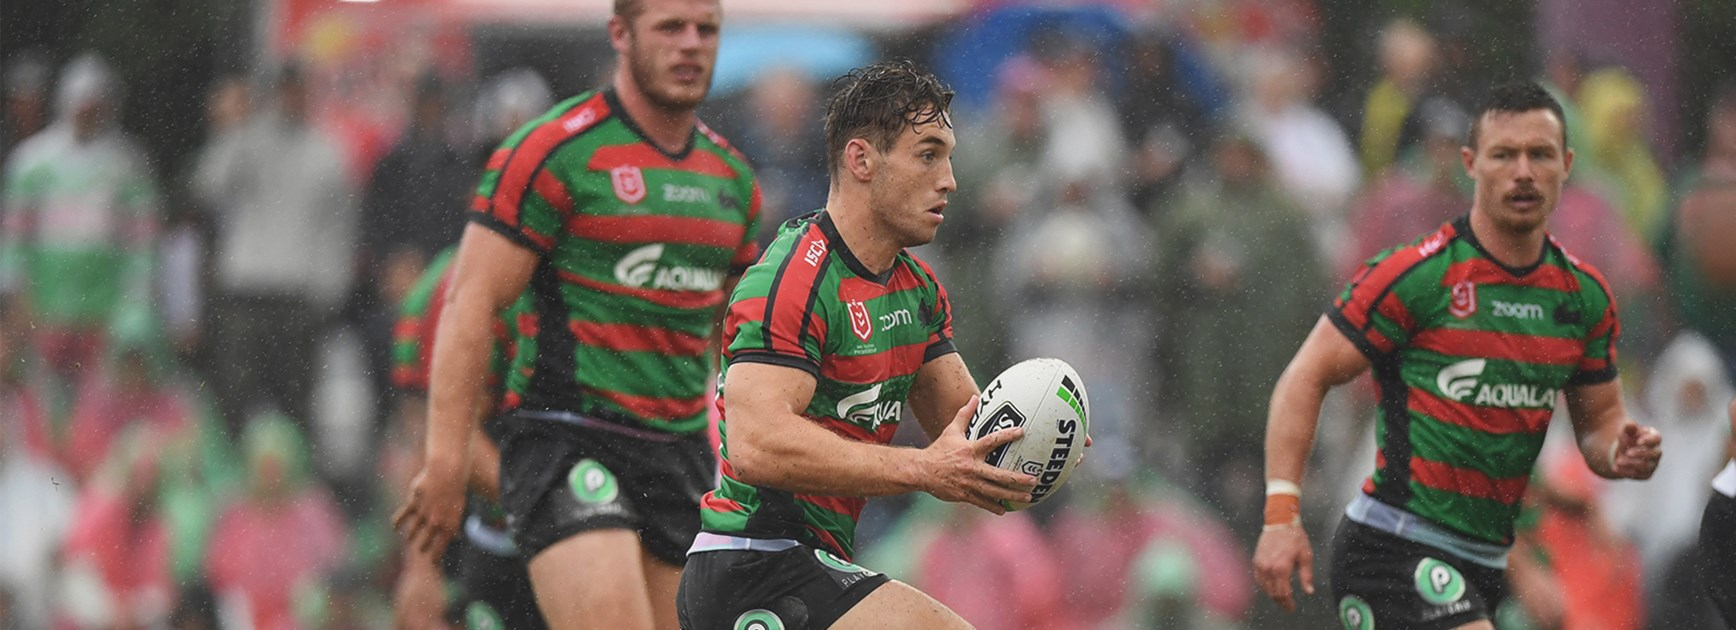 All You Need To Know for the 2019 NRL Season